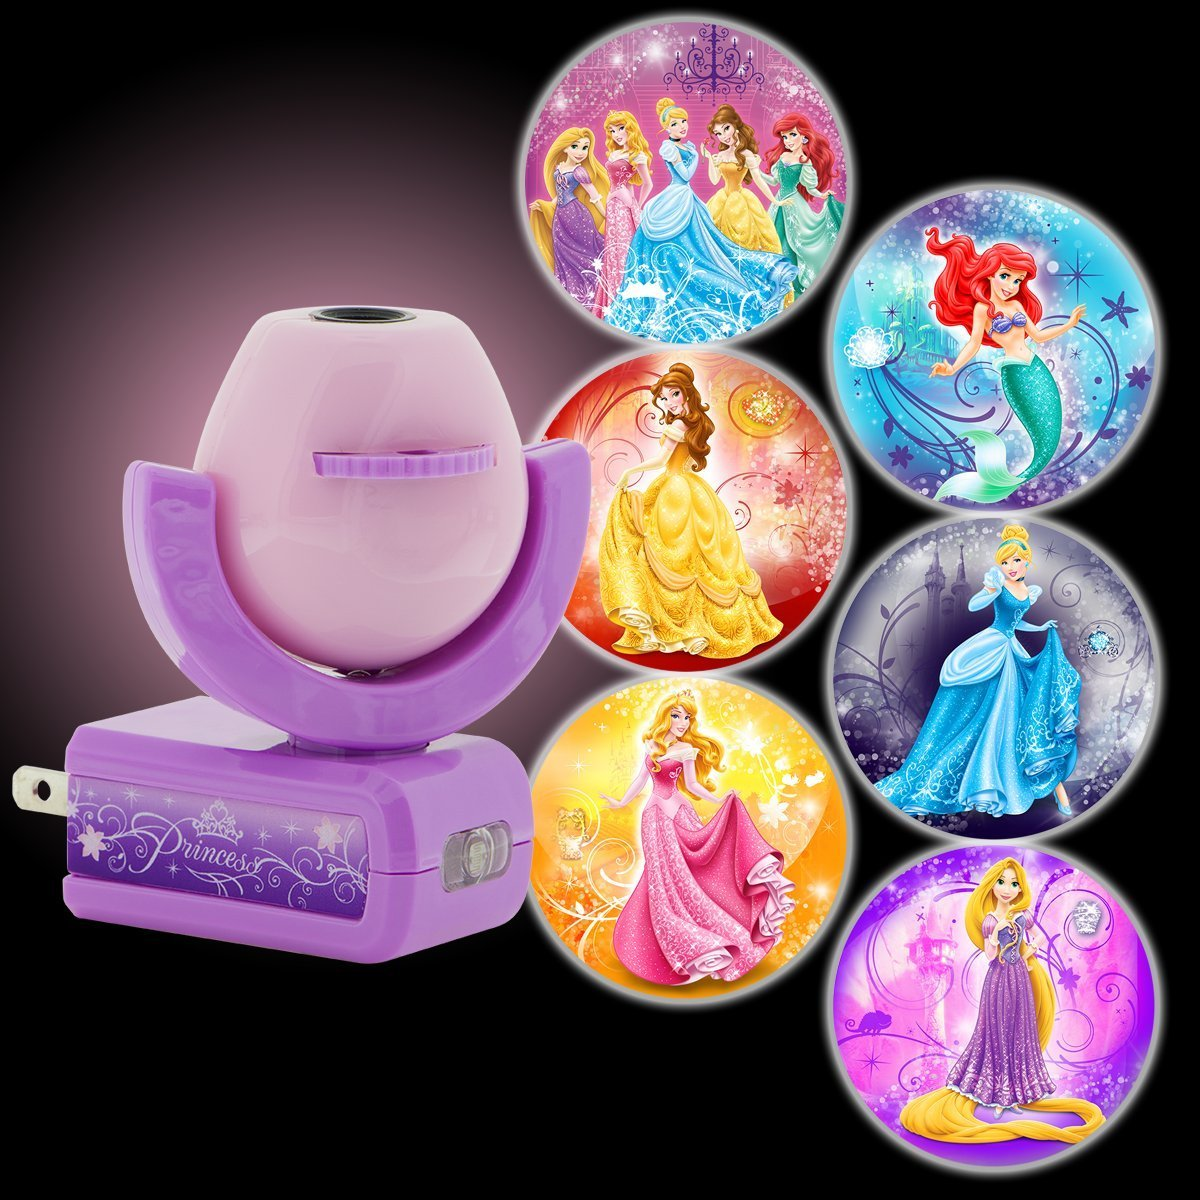 Projectables Disney Princesses 6-Image Plug-In LED Night Light, Light Sensing, 11738